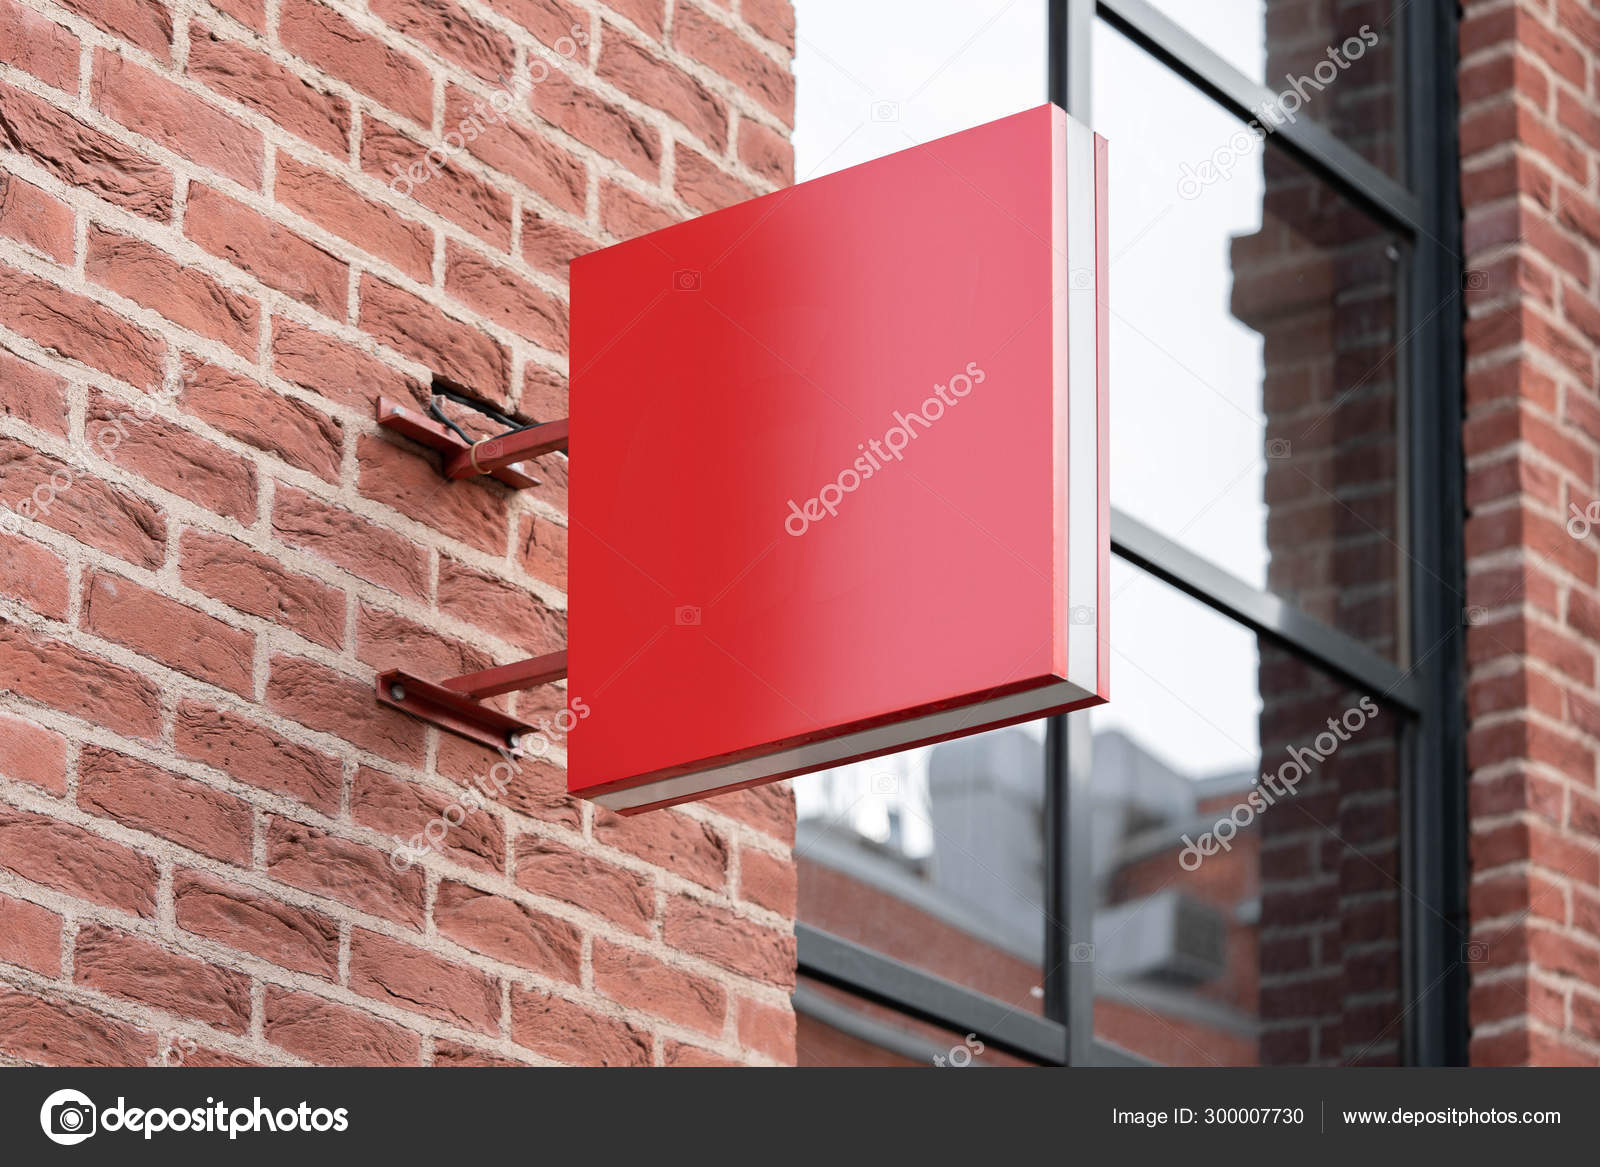 Choose from thousands of free or premium microsoft office templates for every event or occasion. Blank Red Square Store Signboard Mockup Empty Shop Street Sign Signage On The Wall 3d Rendering Stock Photo By C Ekostsov 300007730